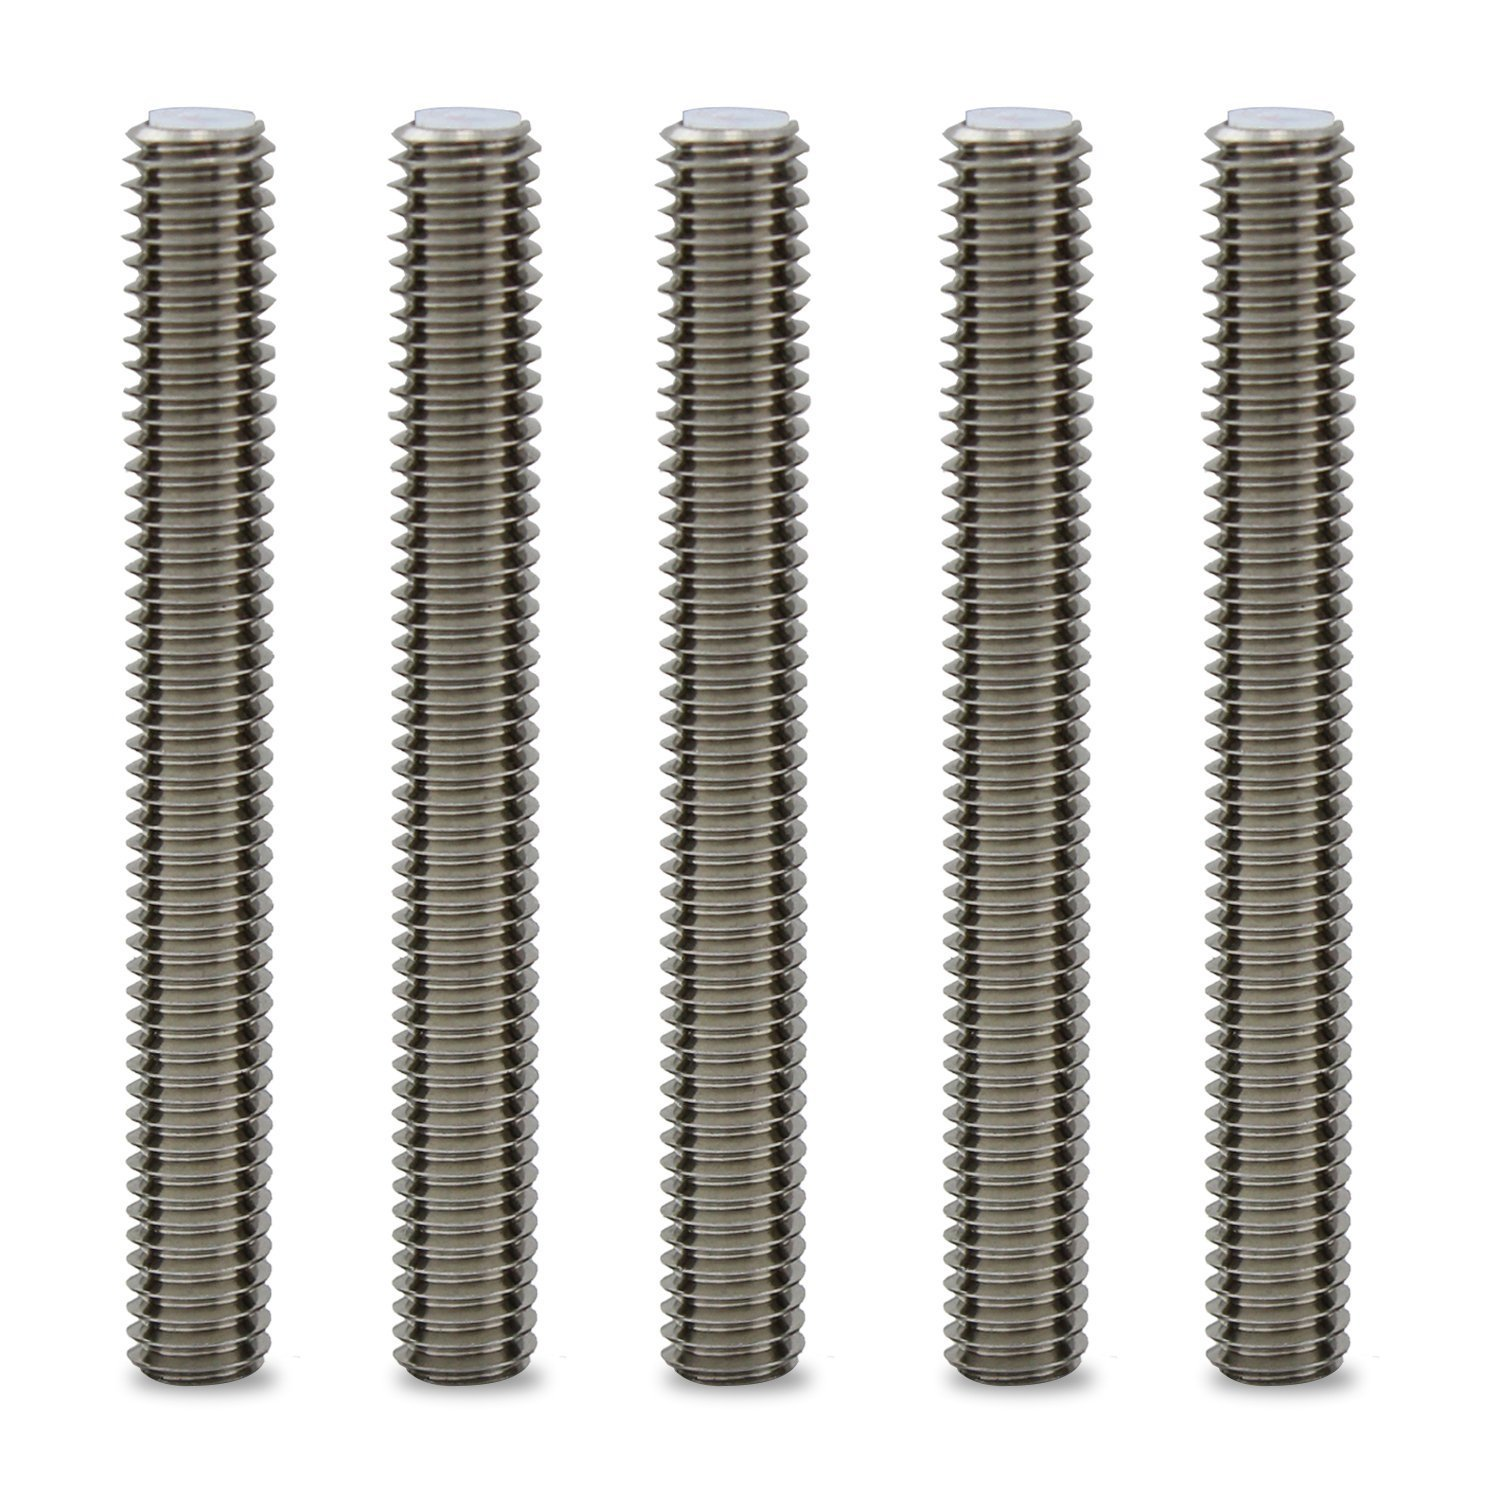 M6*4CM 5pcs Barrel Stainless Steel Nozzle Throat with PTFE Tube 3D Printer Extruder Hot End Accessory for Makerbot MK8